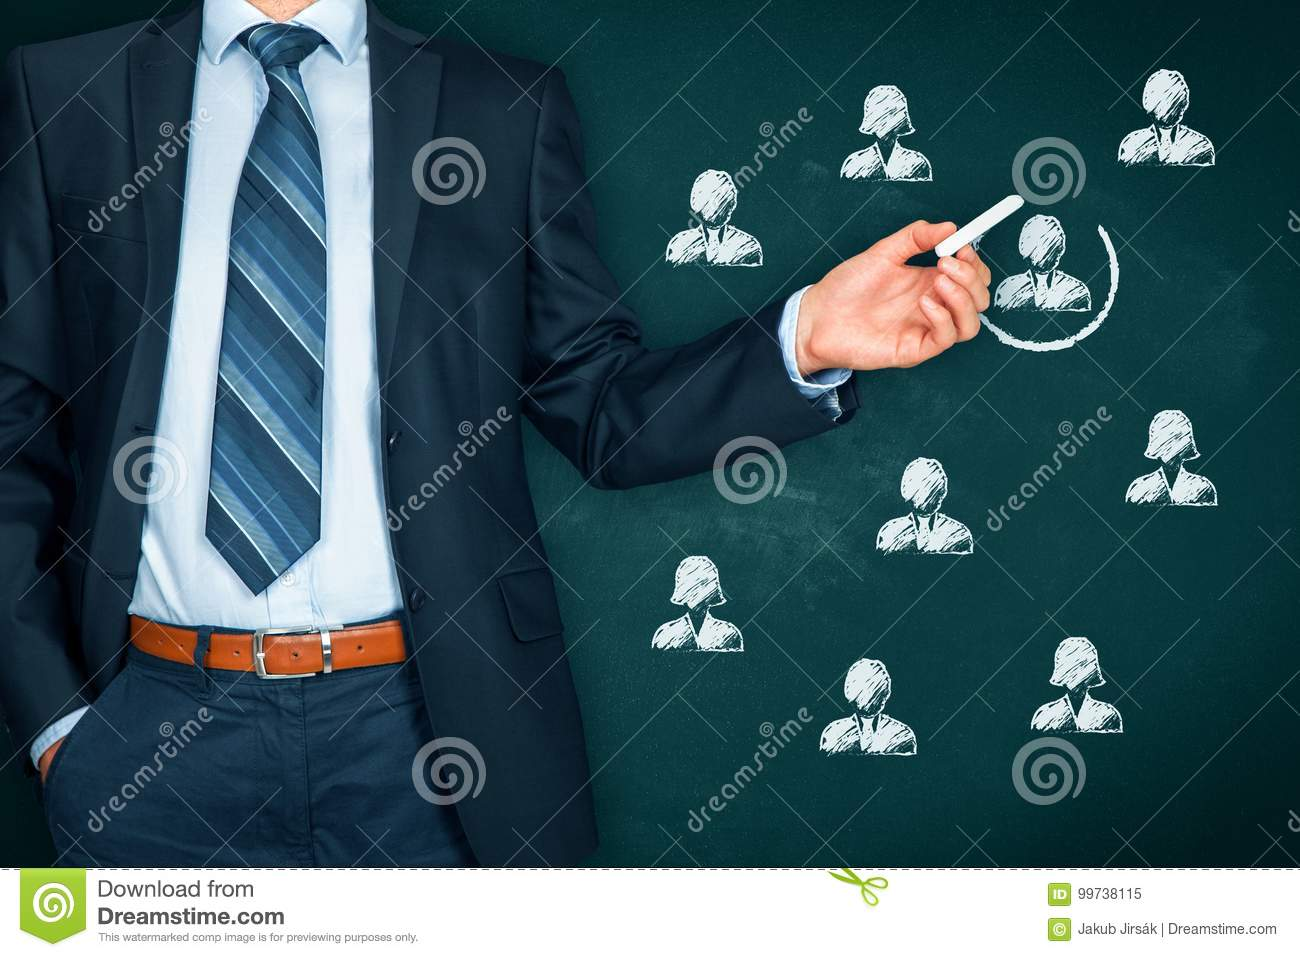 Recruit and hire human resources HR